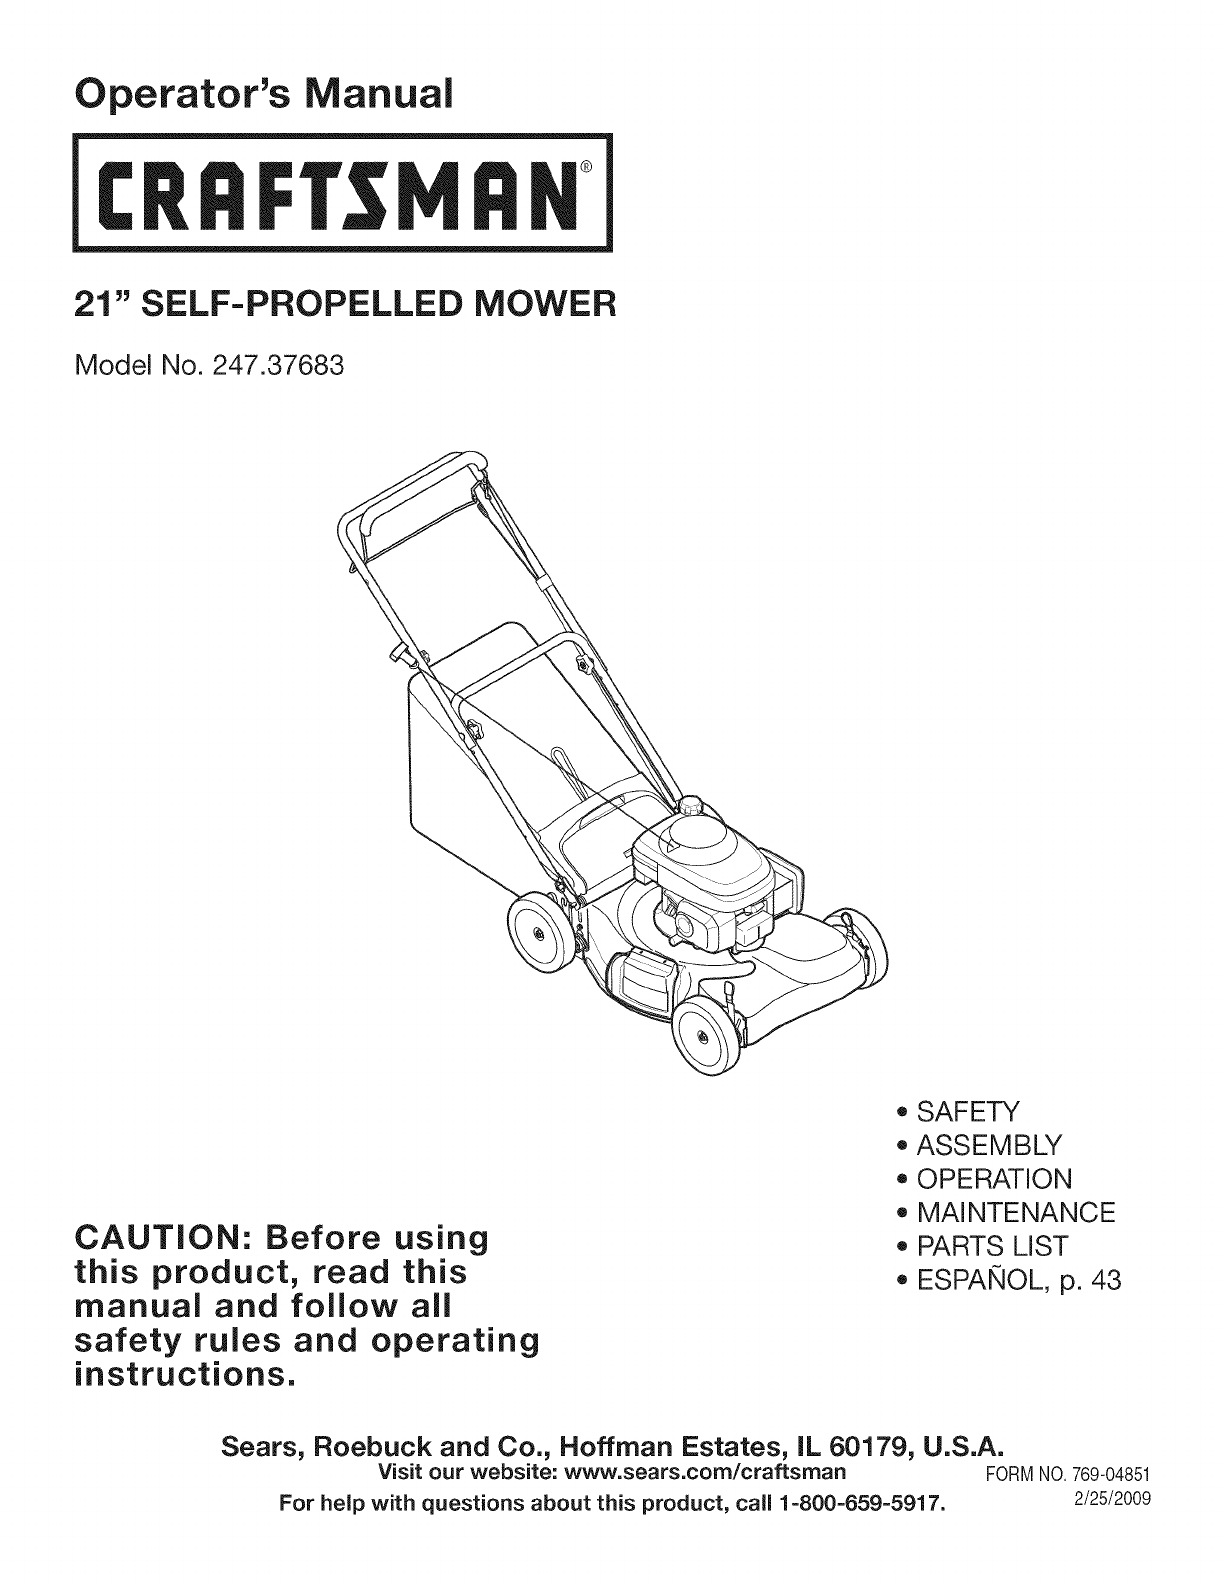 Craftsman Push Lawn Mower Parts : Craftsman self propelled lawn mower parts diagram